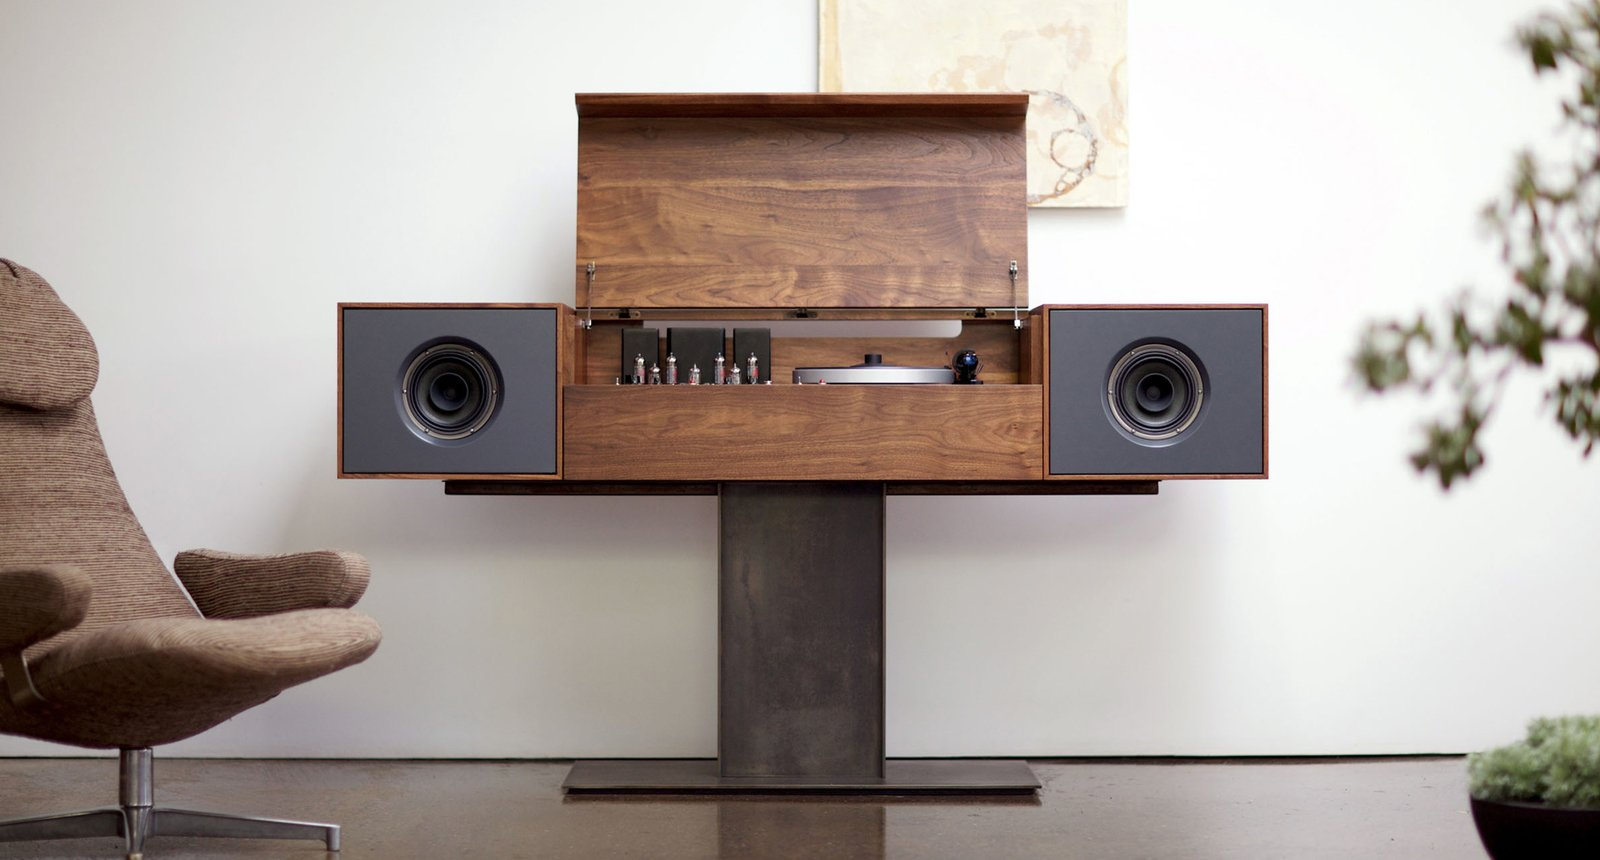 """The flagship of the Symbol audio line, the Modern Record Console pays homage to ""all in one"" console hifi's of the 1950's, an idea whose time, we believe, has come around again. Each cabinet is individually crafted in the tradition of fine bench-made furniture from solid American Walnut. The sculptural metal base is constructed from 1/4"" plate steel and hand patinated to create a warm natural finish. As a piece of furniture the MRC will undoubtedly become a focal point of any interior."" - SYMBOL audio Photo: Symbol Audio http://shop.symbolaudio.com/pages/modern-record-console"